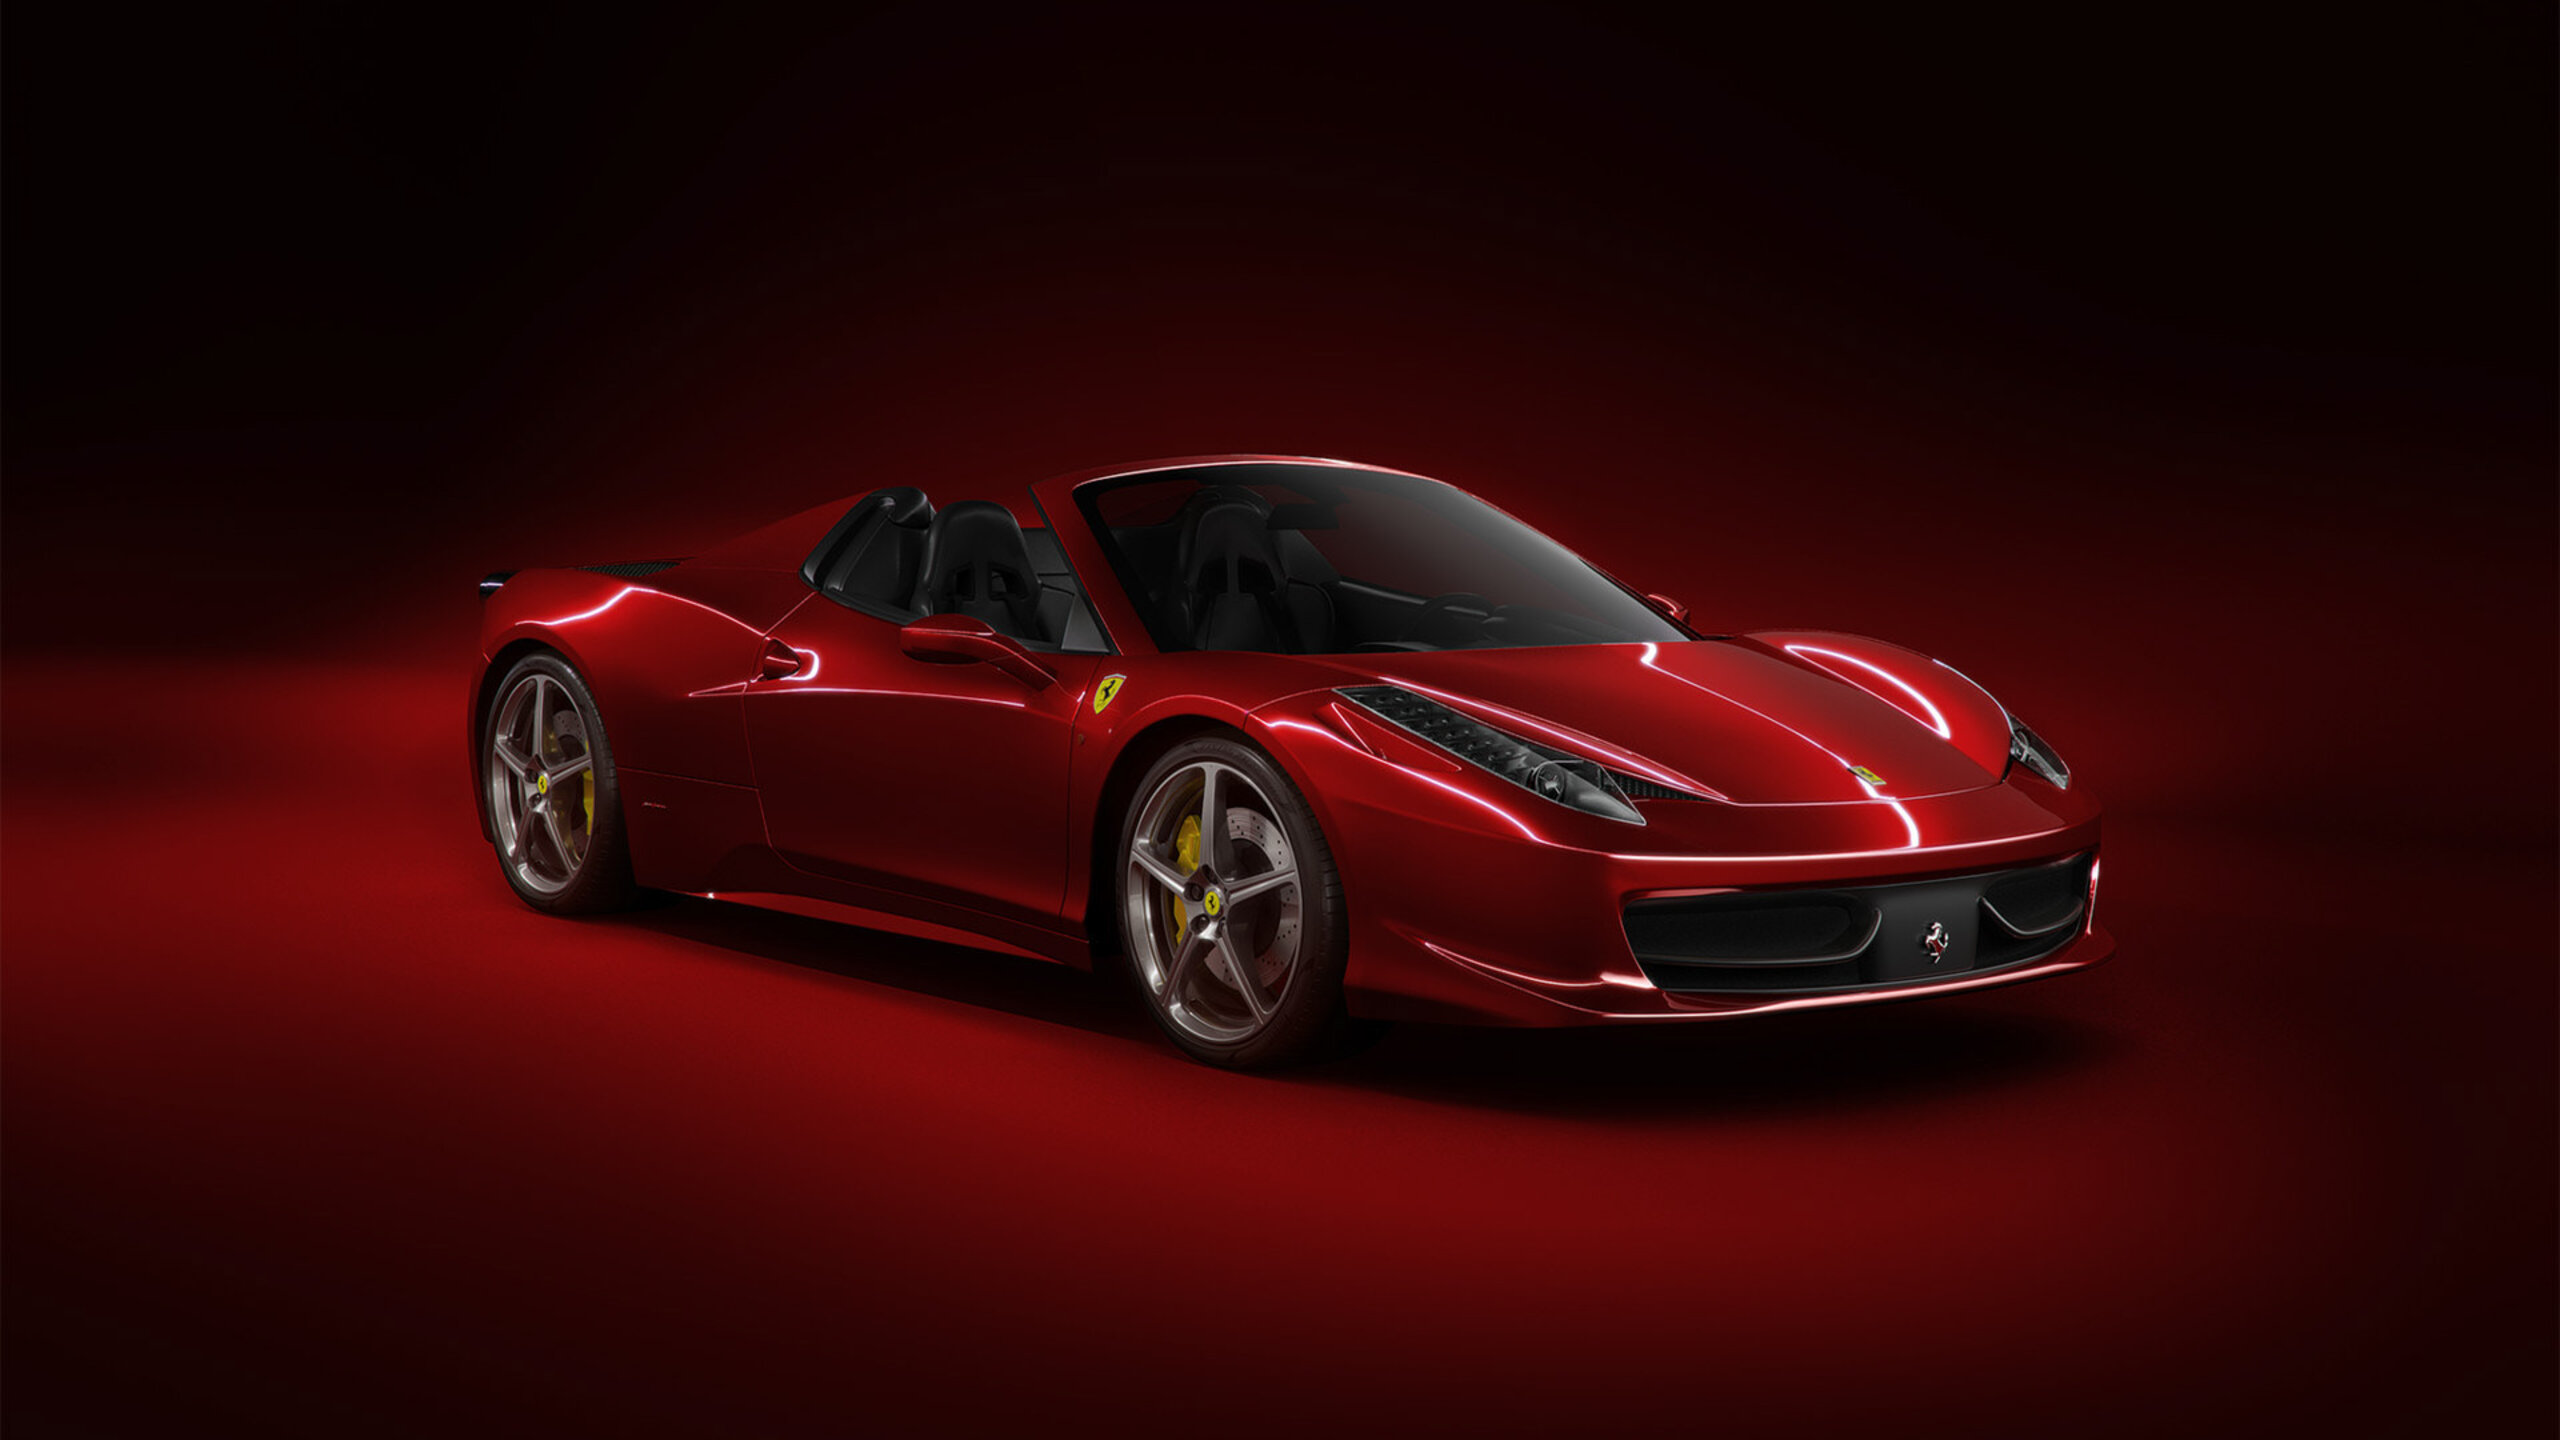 2560x1440 Red Ferrari New 1440p Resolution Hd 4k Wallpapers Images Backgrounds Photos And Pictures